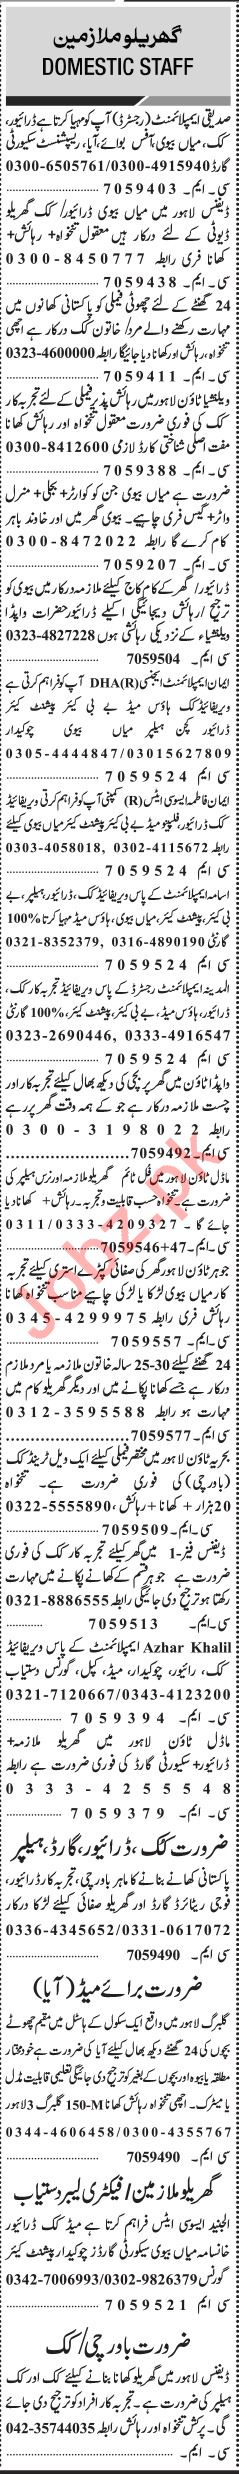 Jang Sunday Classified Ads 20th Jan 2019 for House Staff